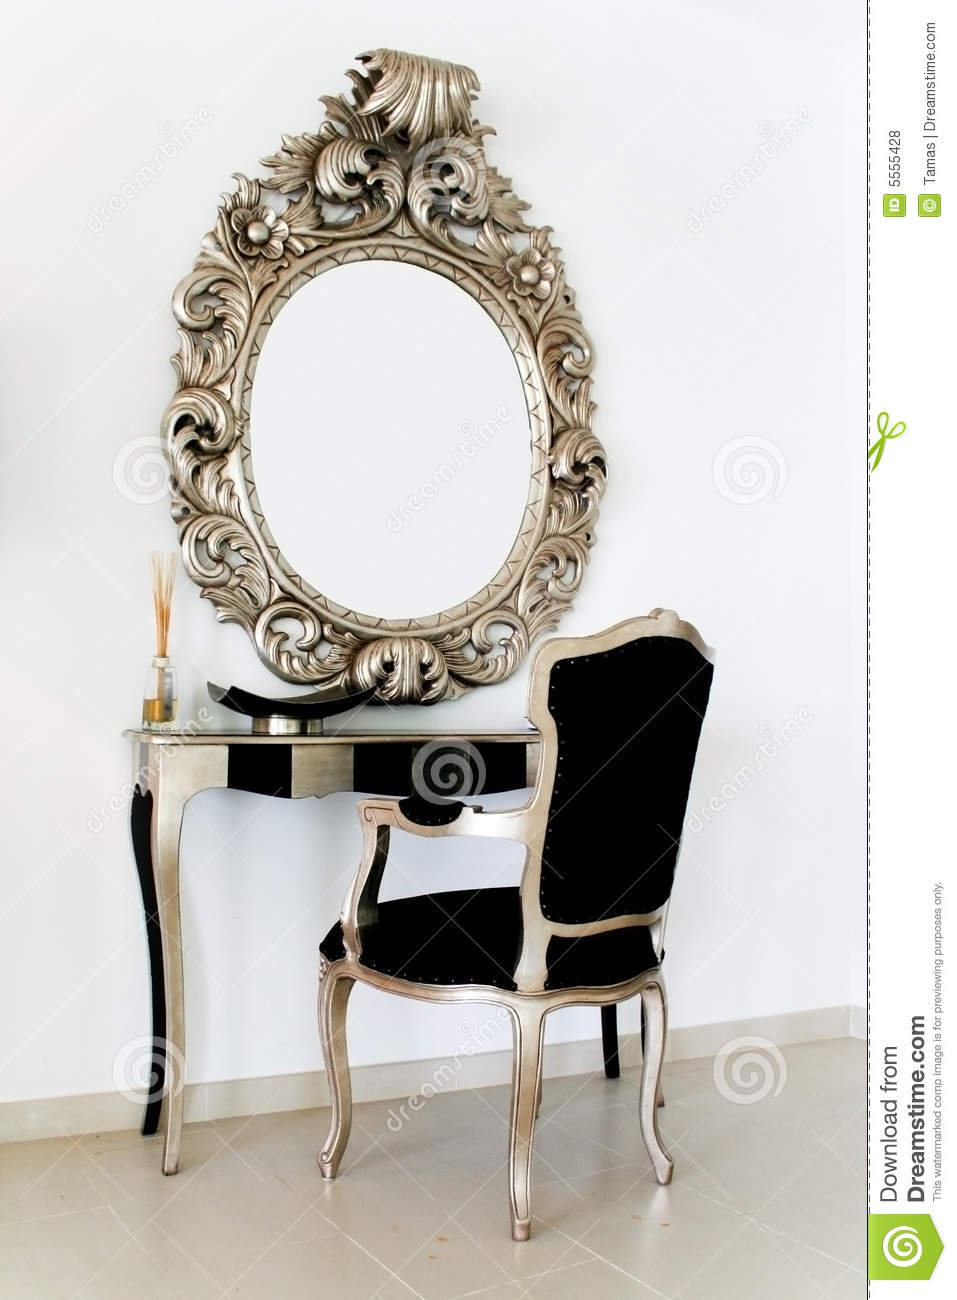 Antique Dressing Table Royalty Free Stock Photos Image 5555428